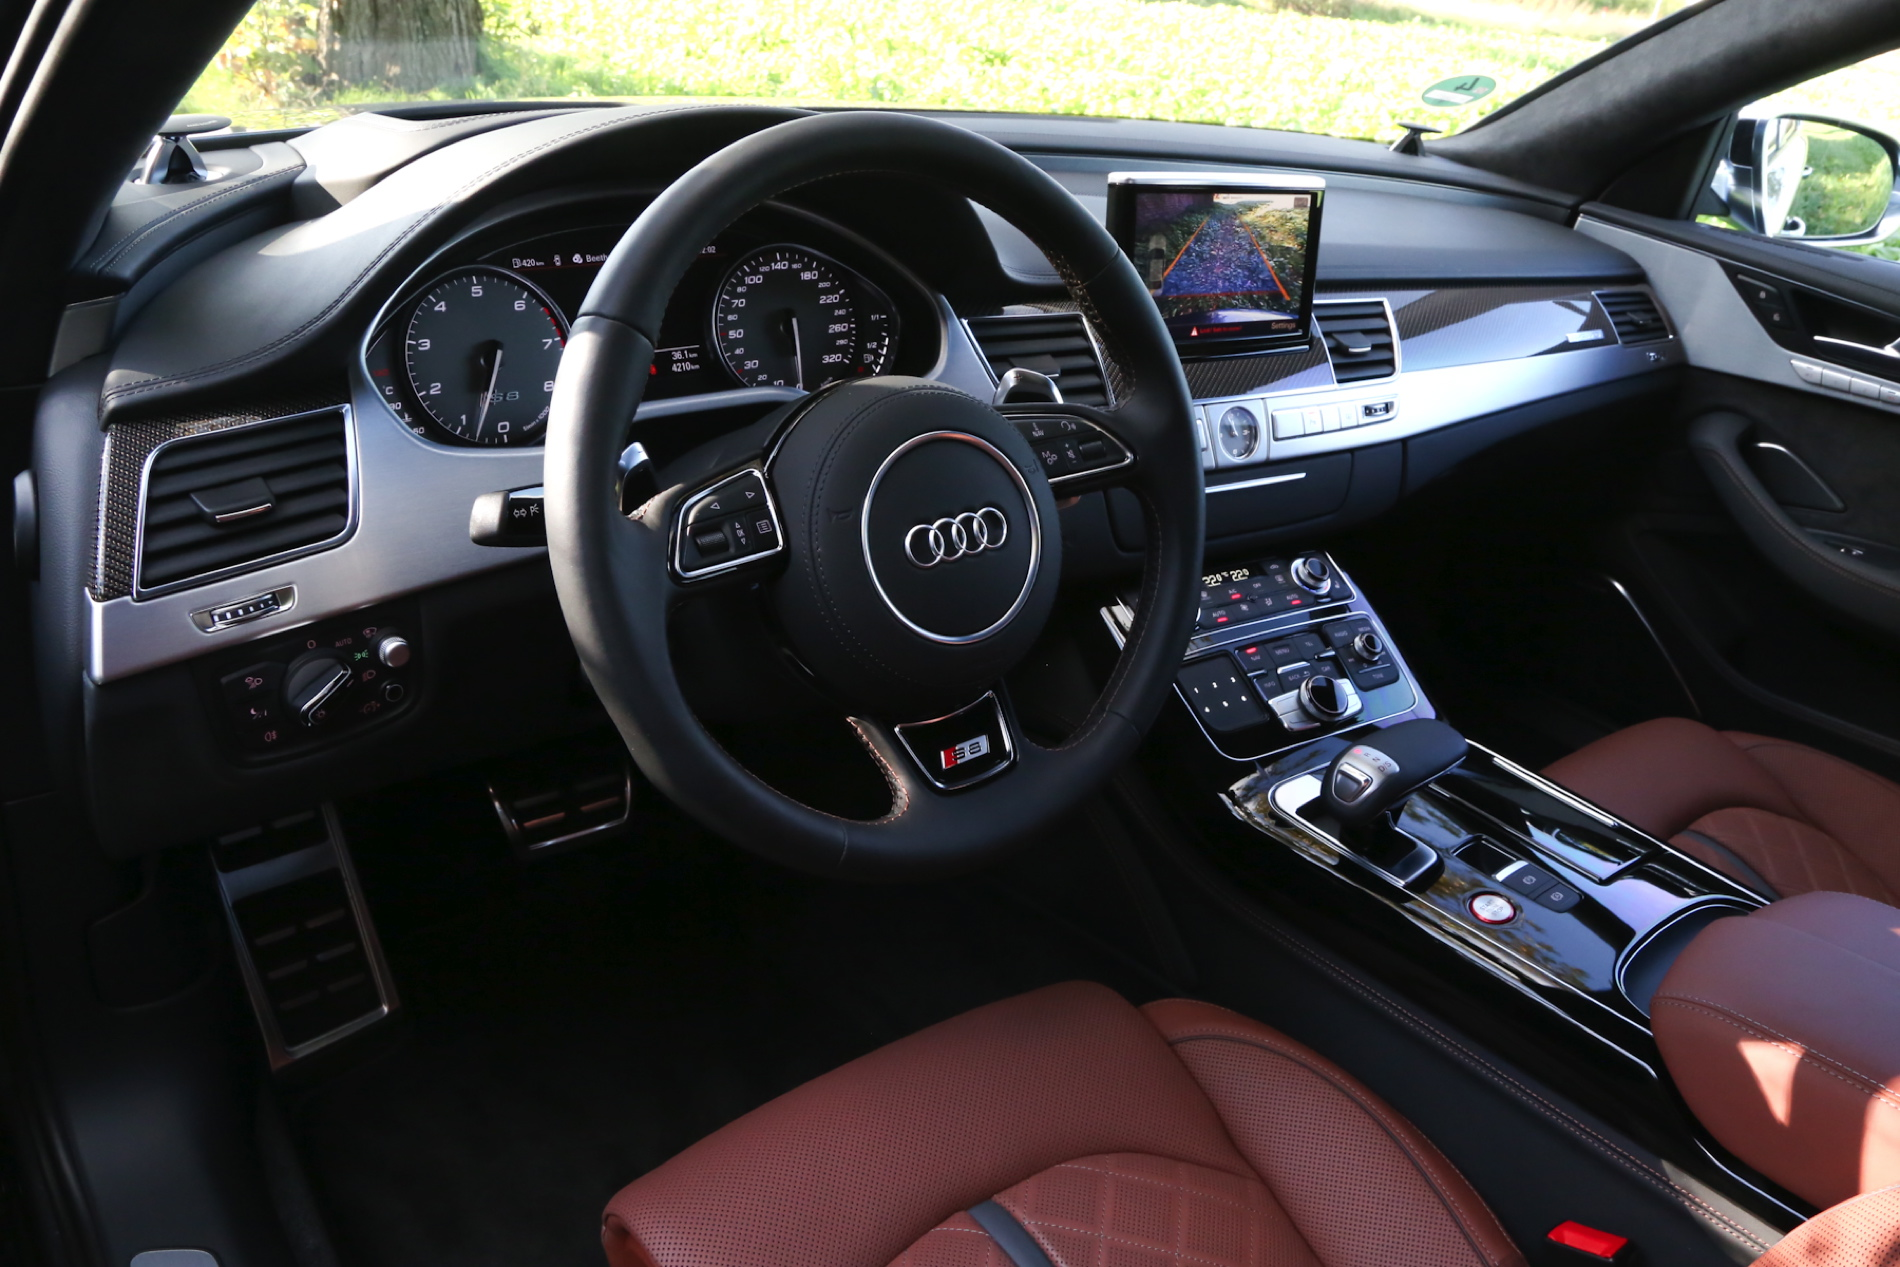 2015 Audi S8 Test Drive And Review – The Stately Autobahn Stormer